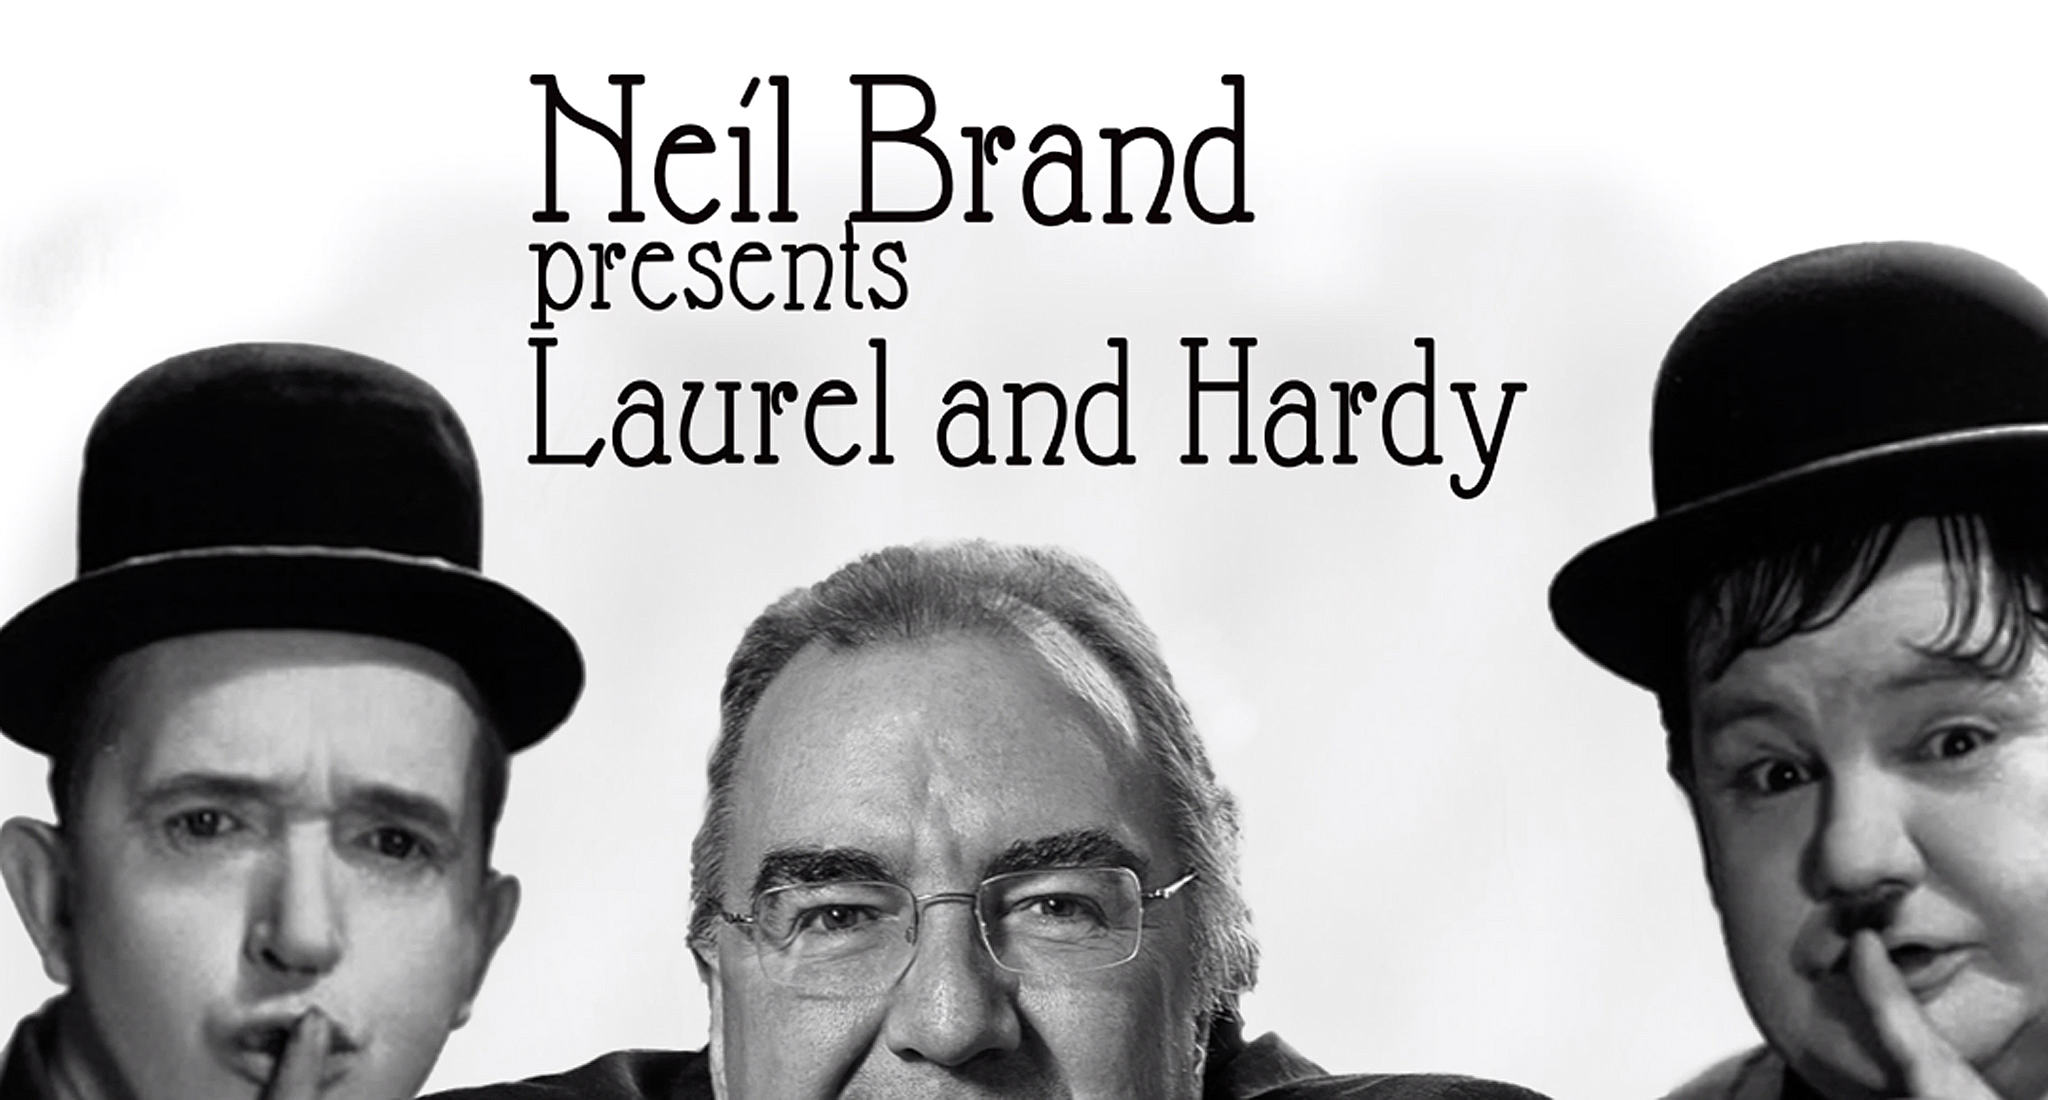 Neil Brand presents Laurel and Hardy